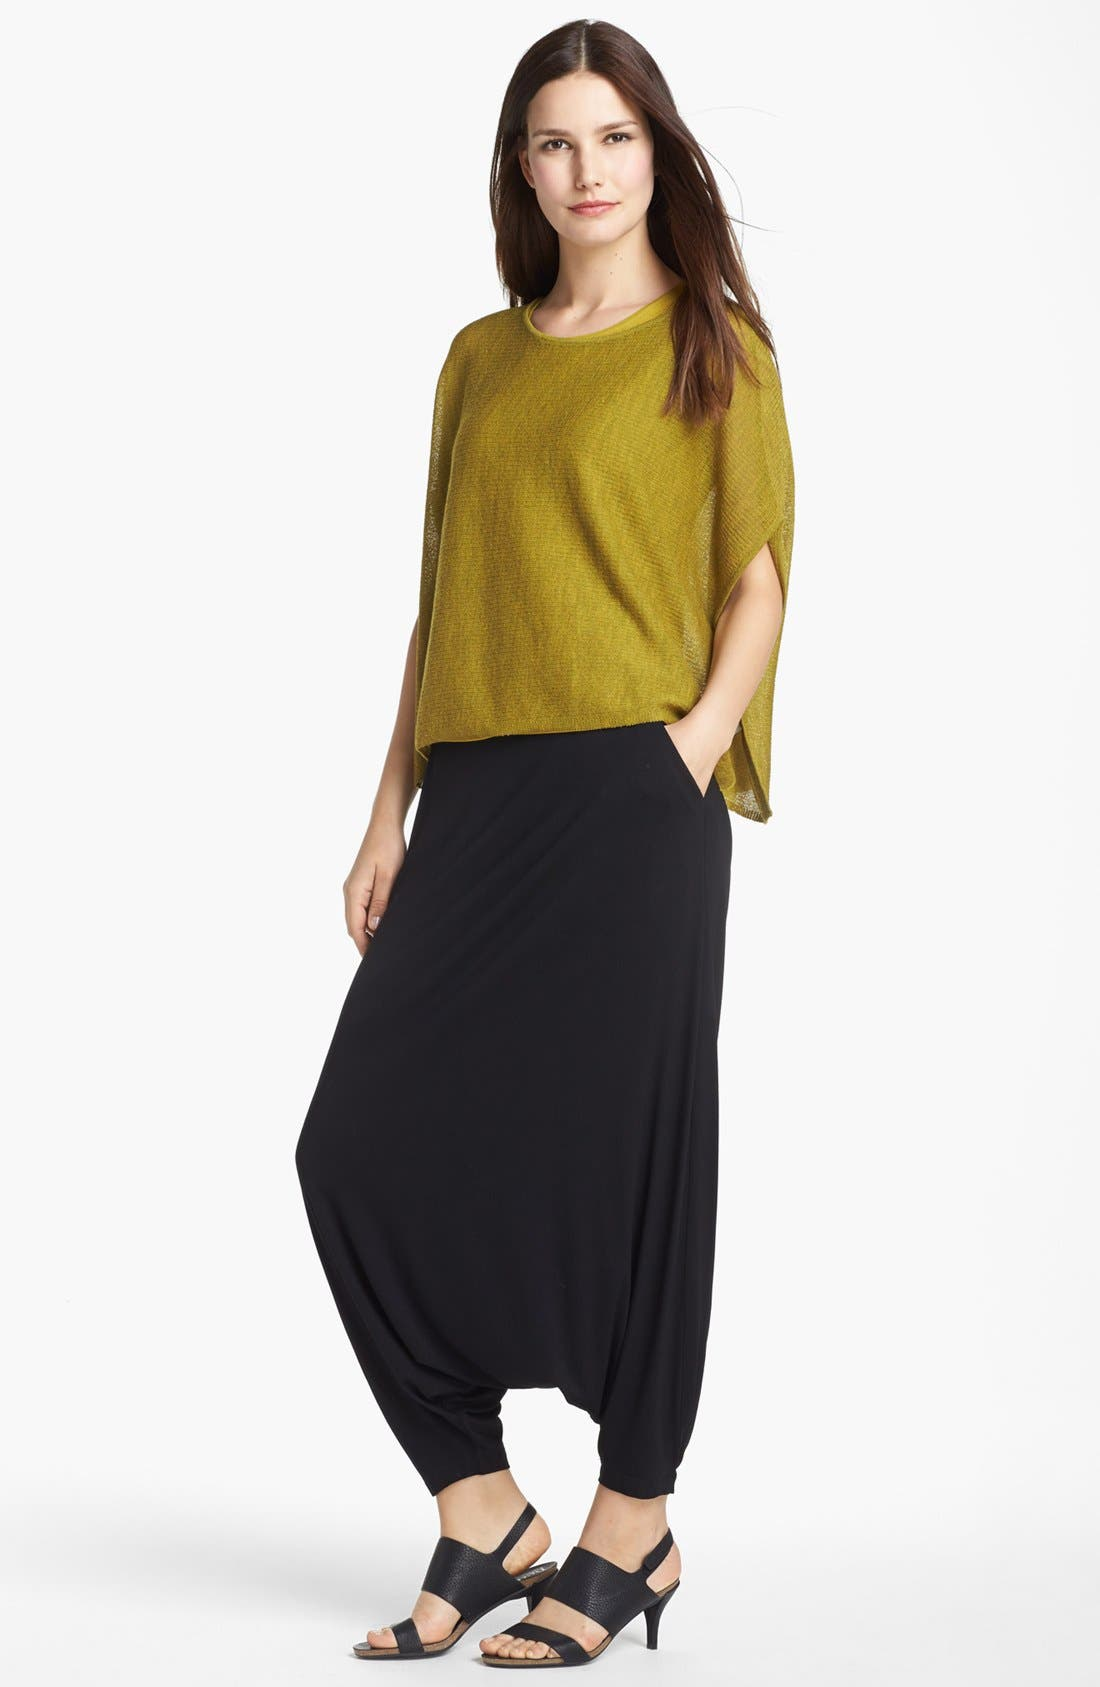 Alternate Image 1 Selected - Eileen Fisher 'Ethereal Wool' Short Poncho Top (Petite)